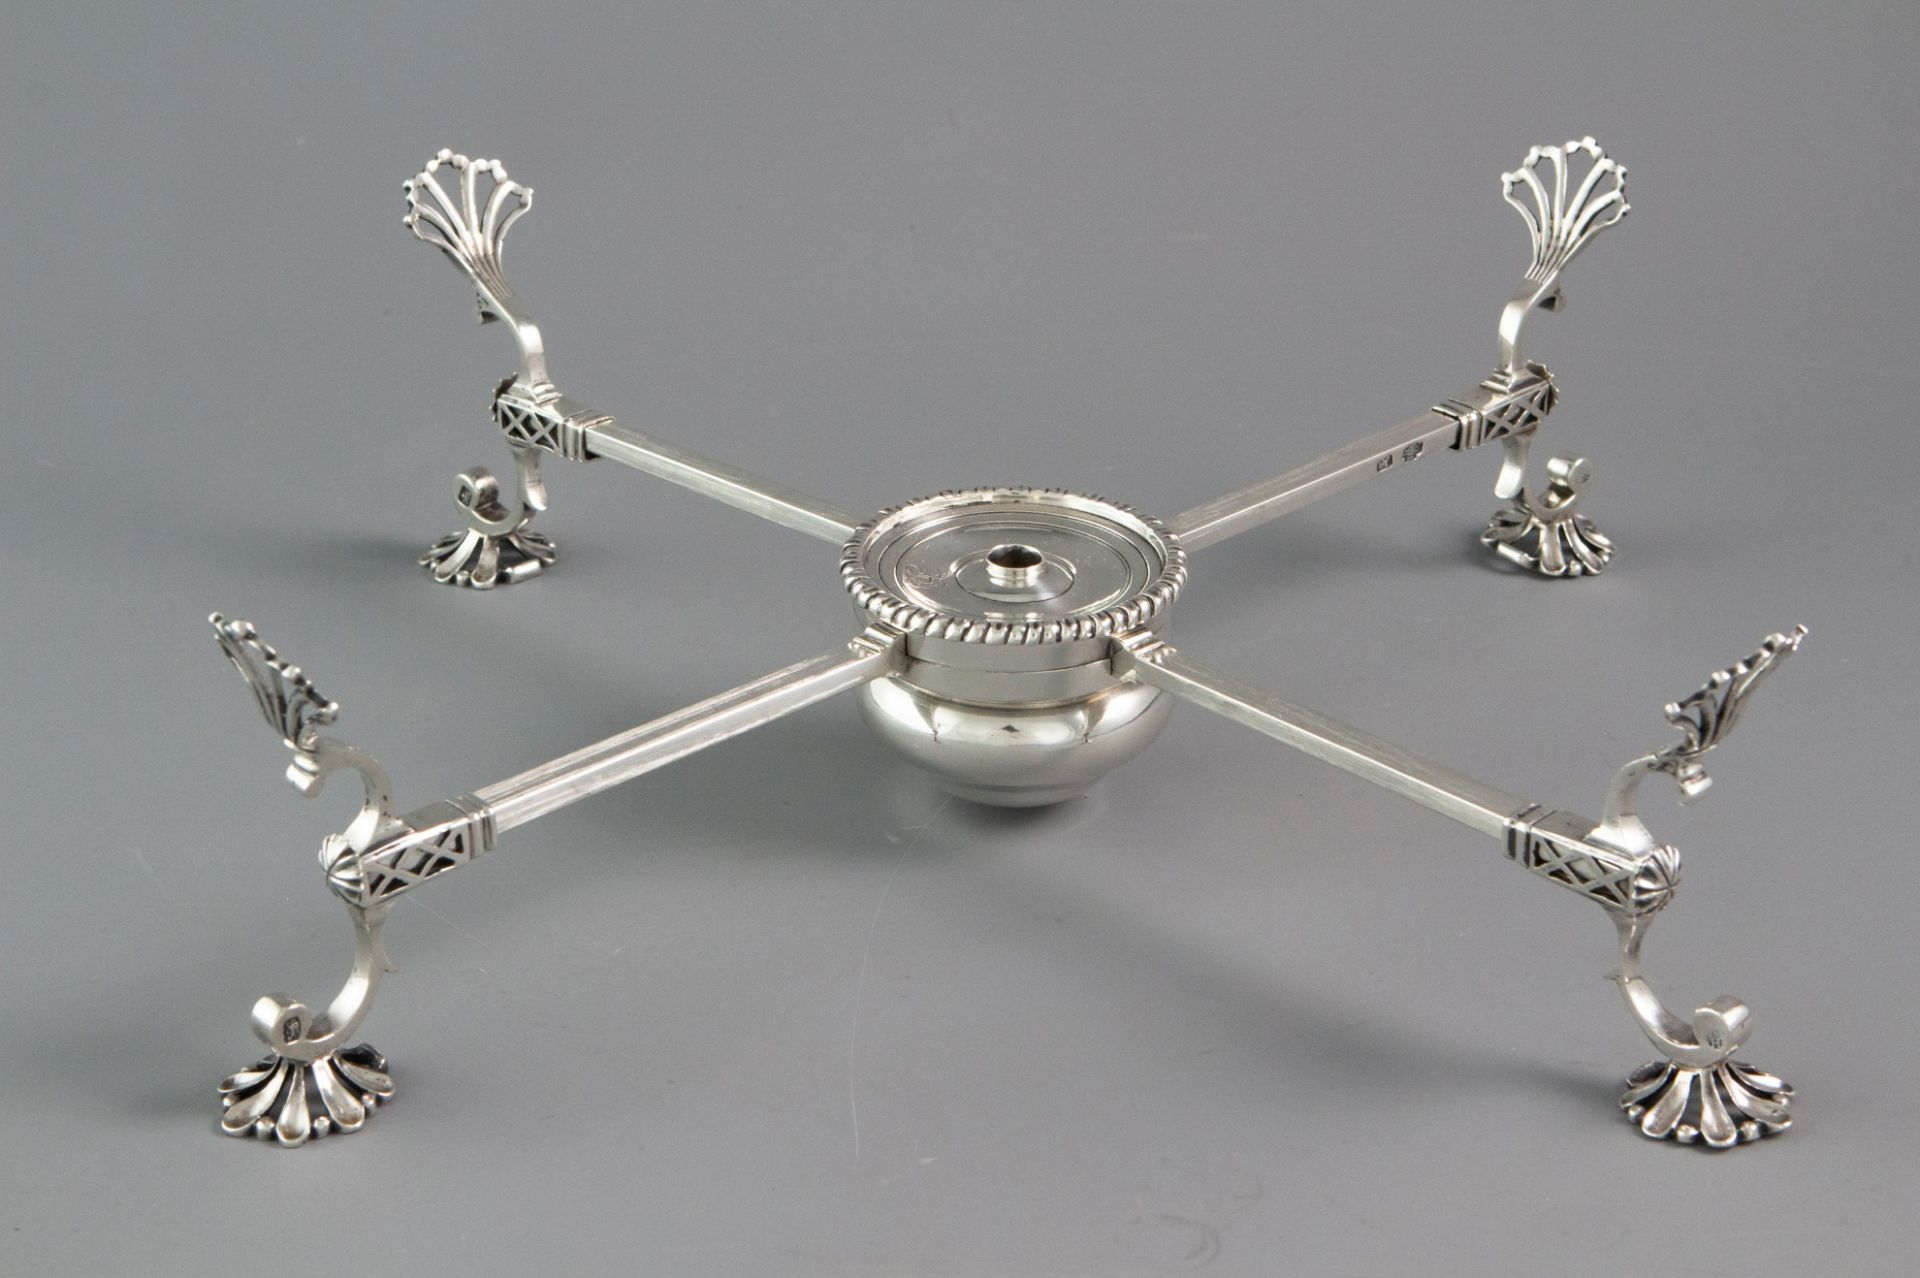 An Early George III Silver Dish Cross, London 1766 by Samuel Herbert